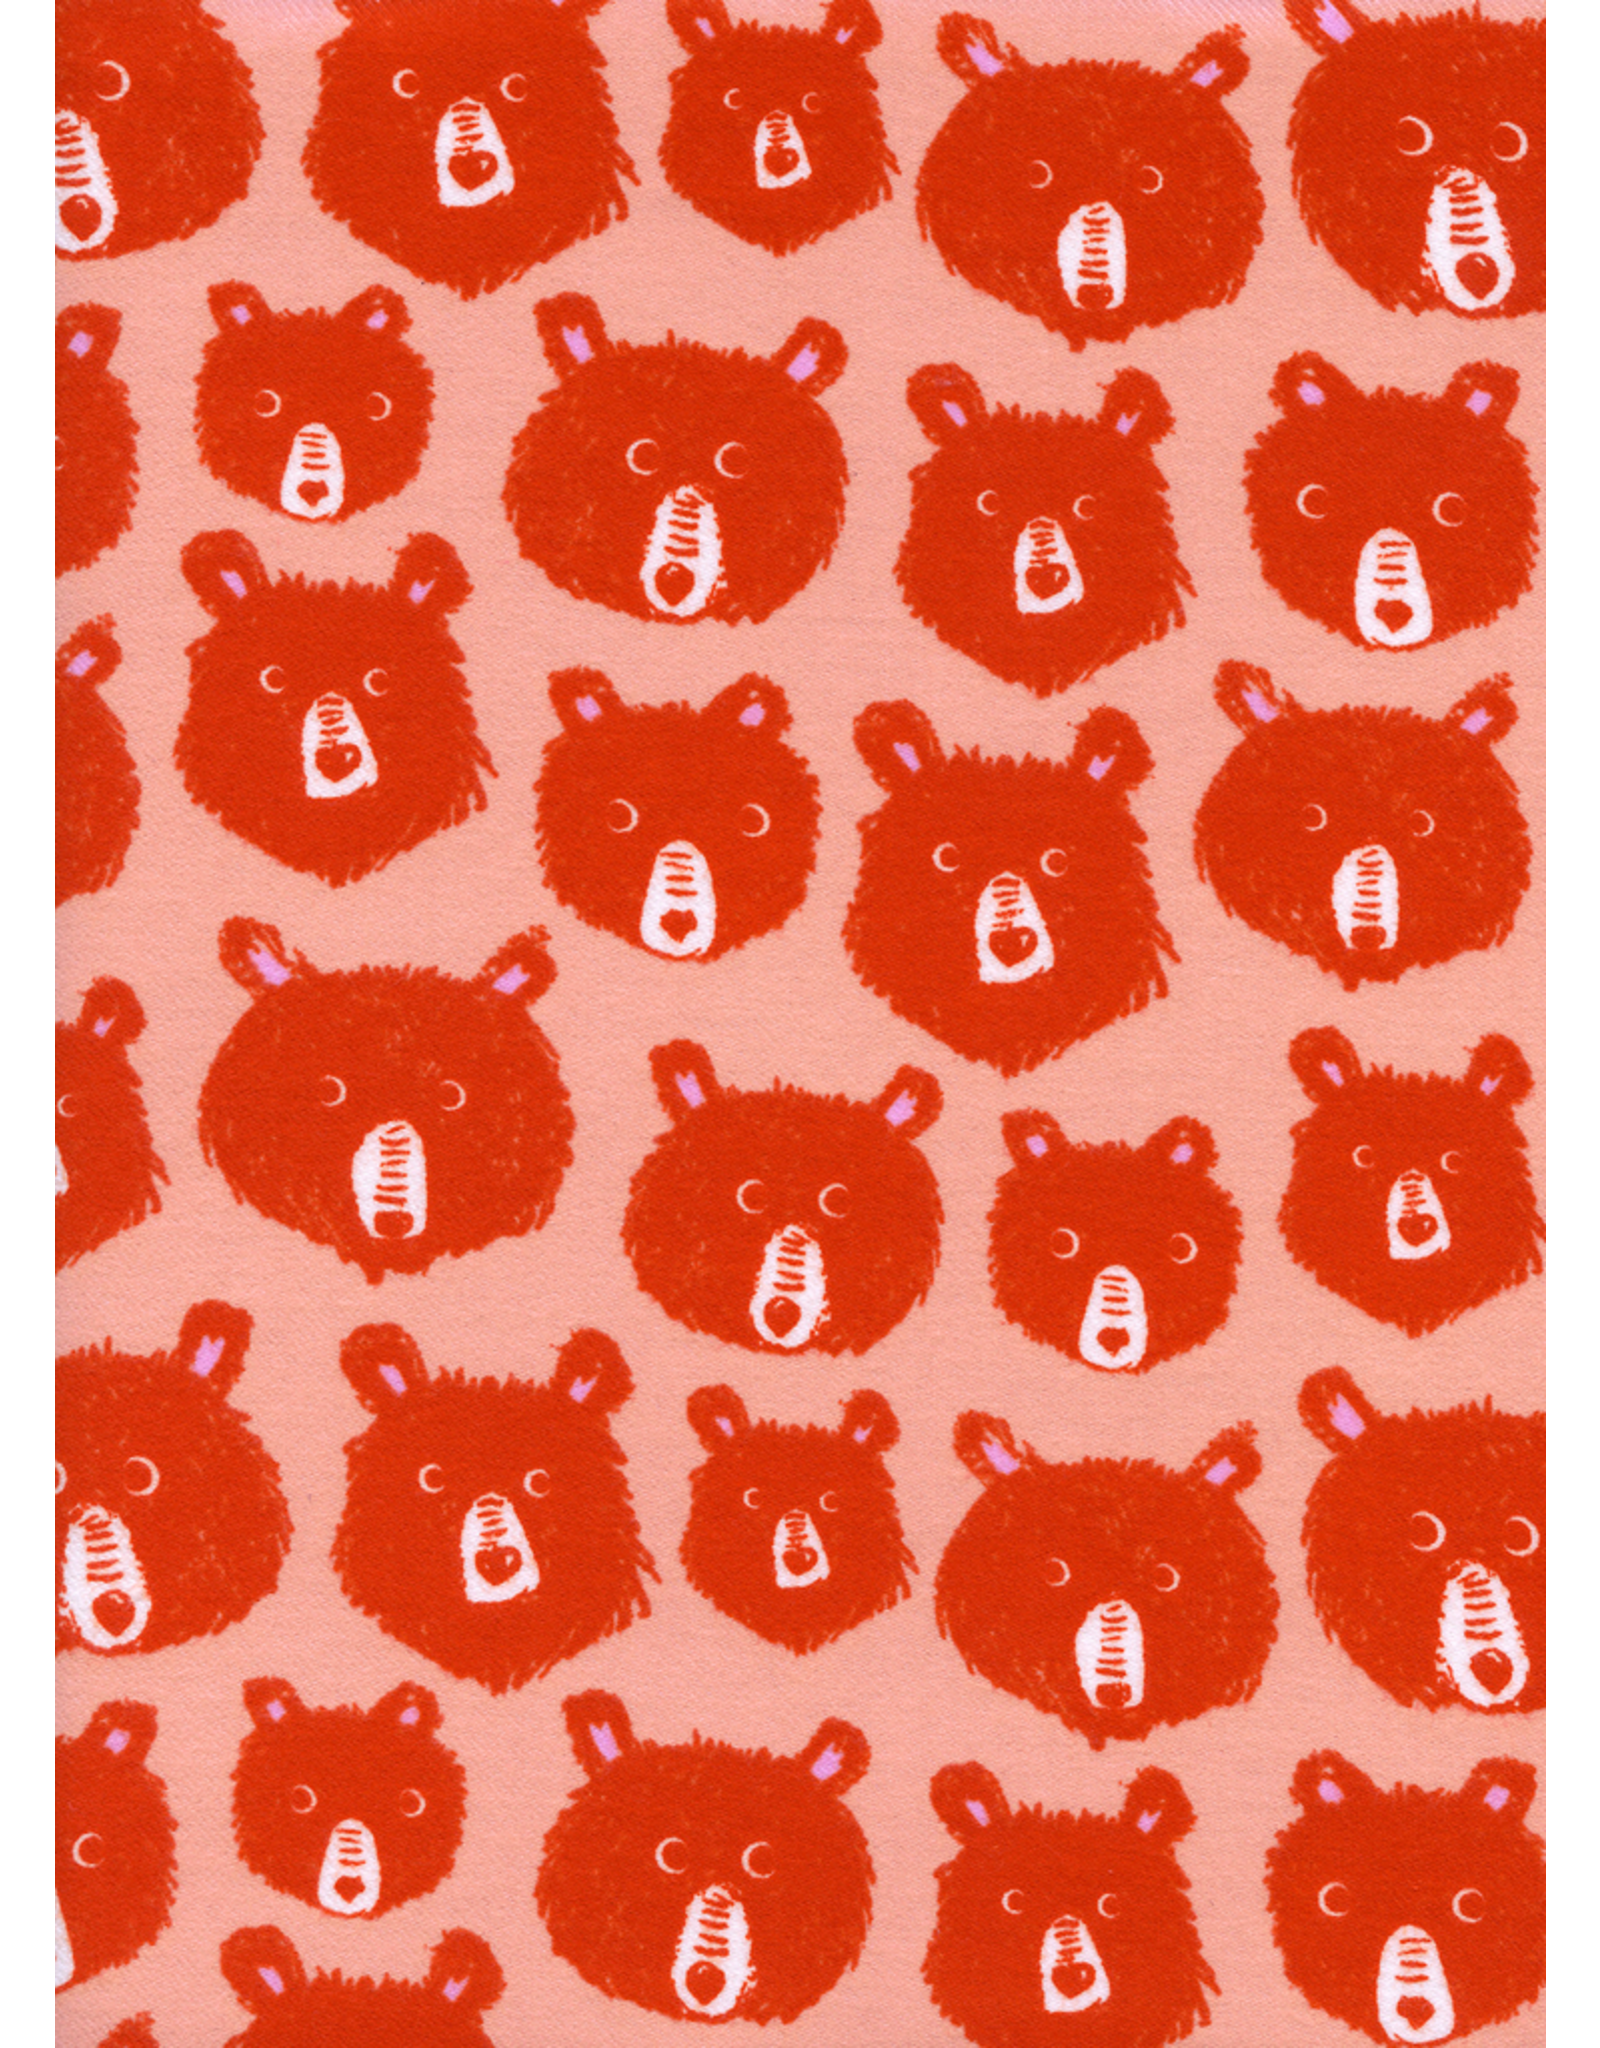 Cotton + Steel Teddy and the Bears in Pink Flannel